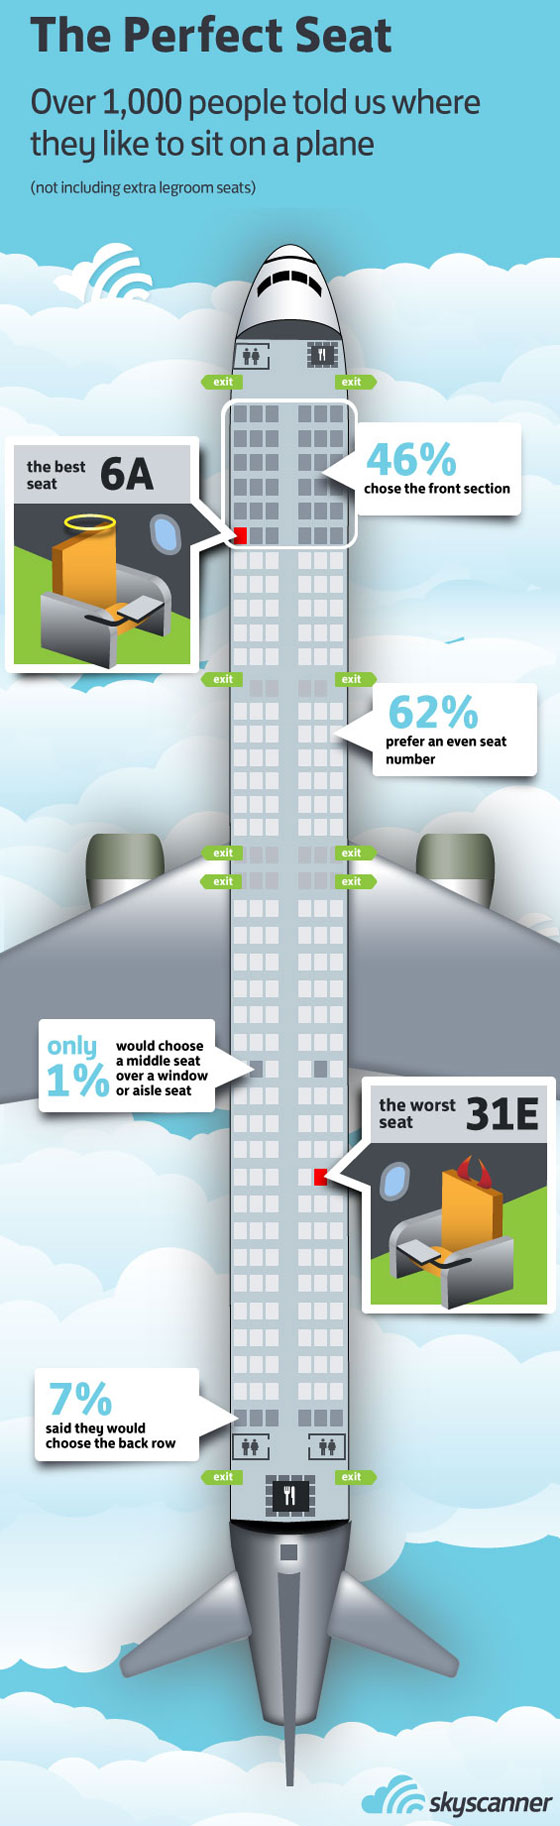 aircraft seating infographic